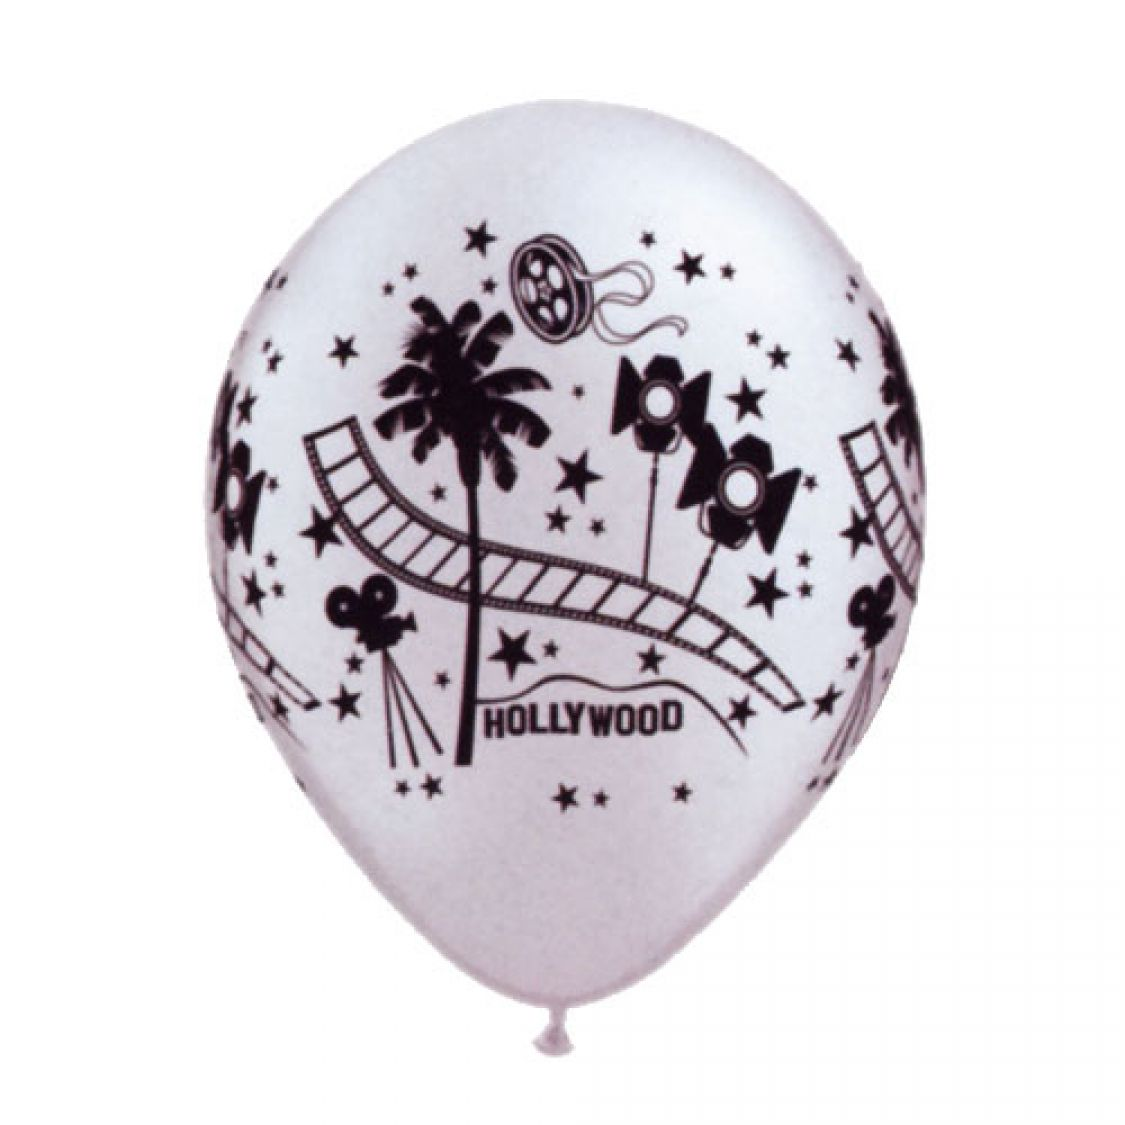 Ballon Hollywood Stars qualatex